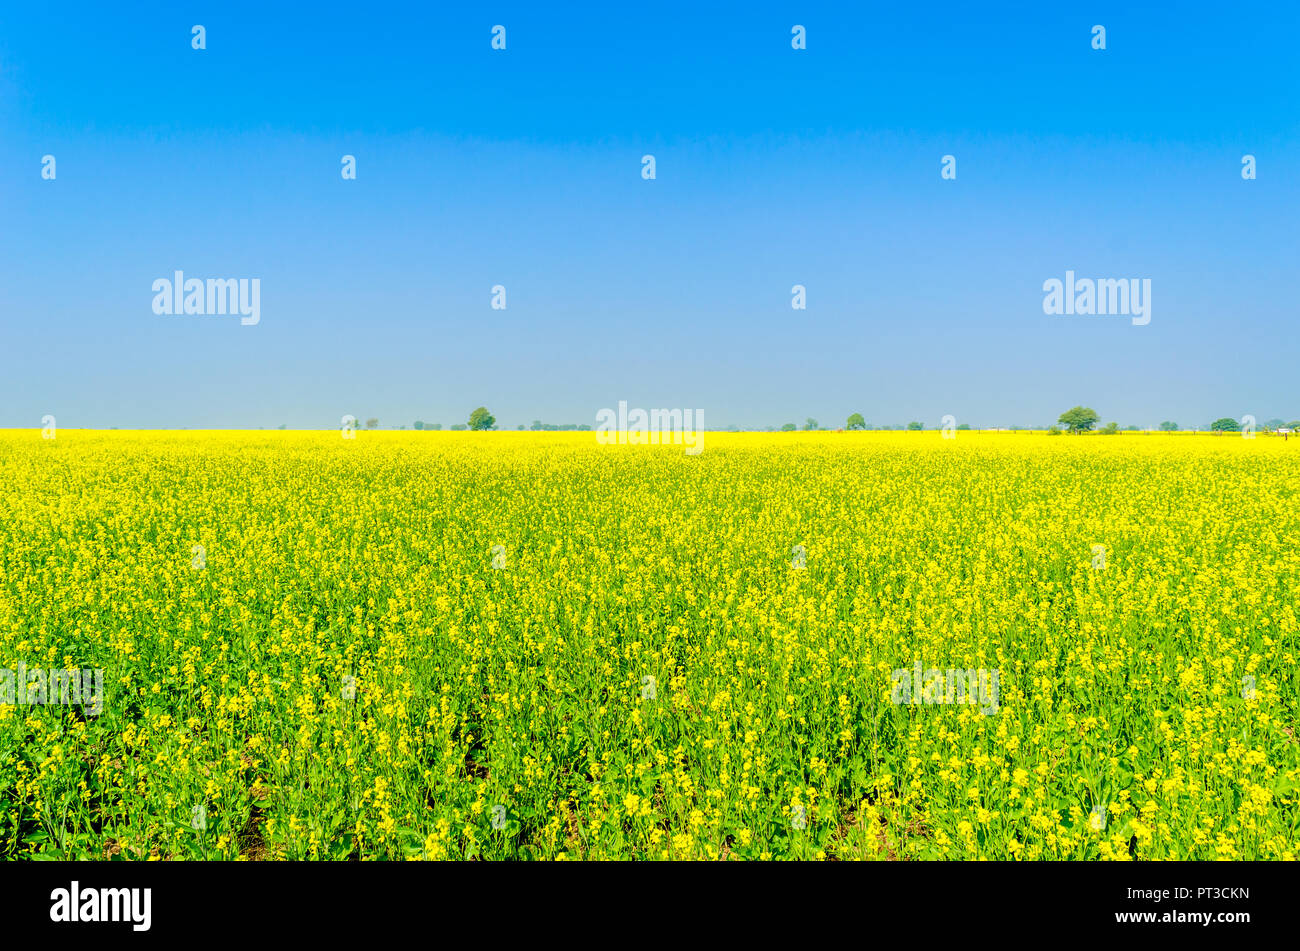 Agriculture Farm With Yellow Mustard Flowers Blooming Stock Photo